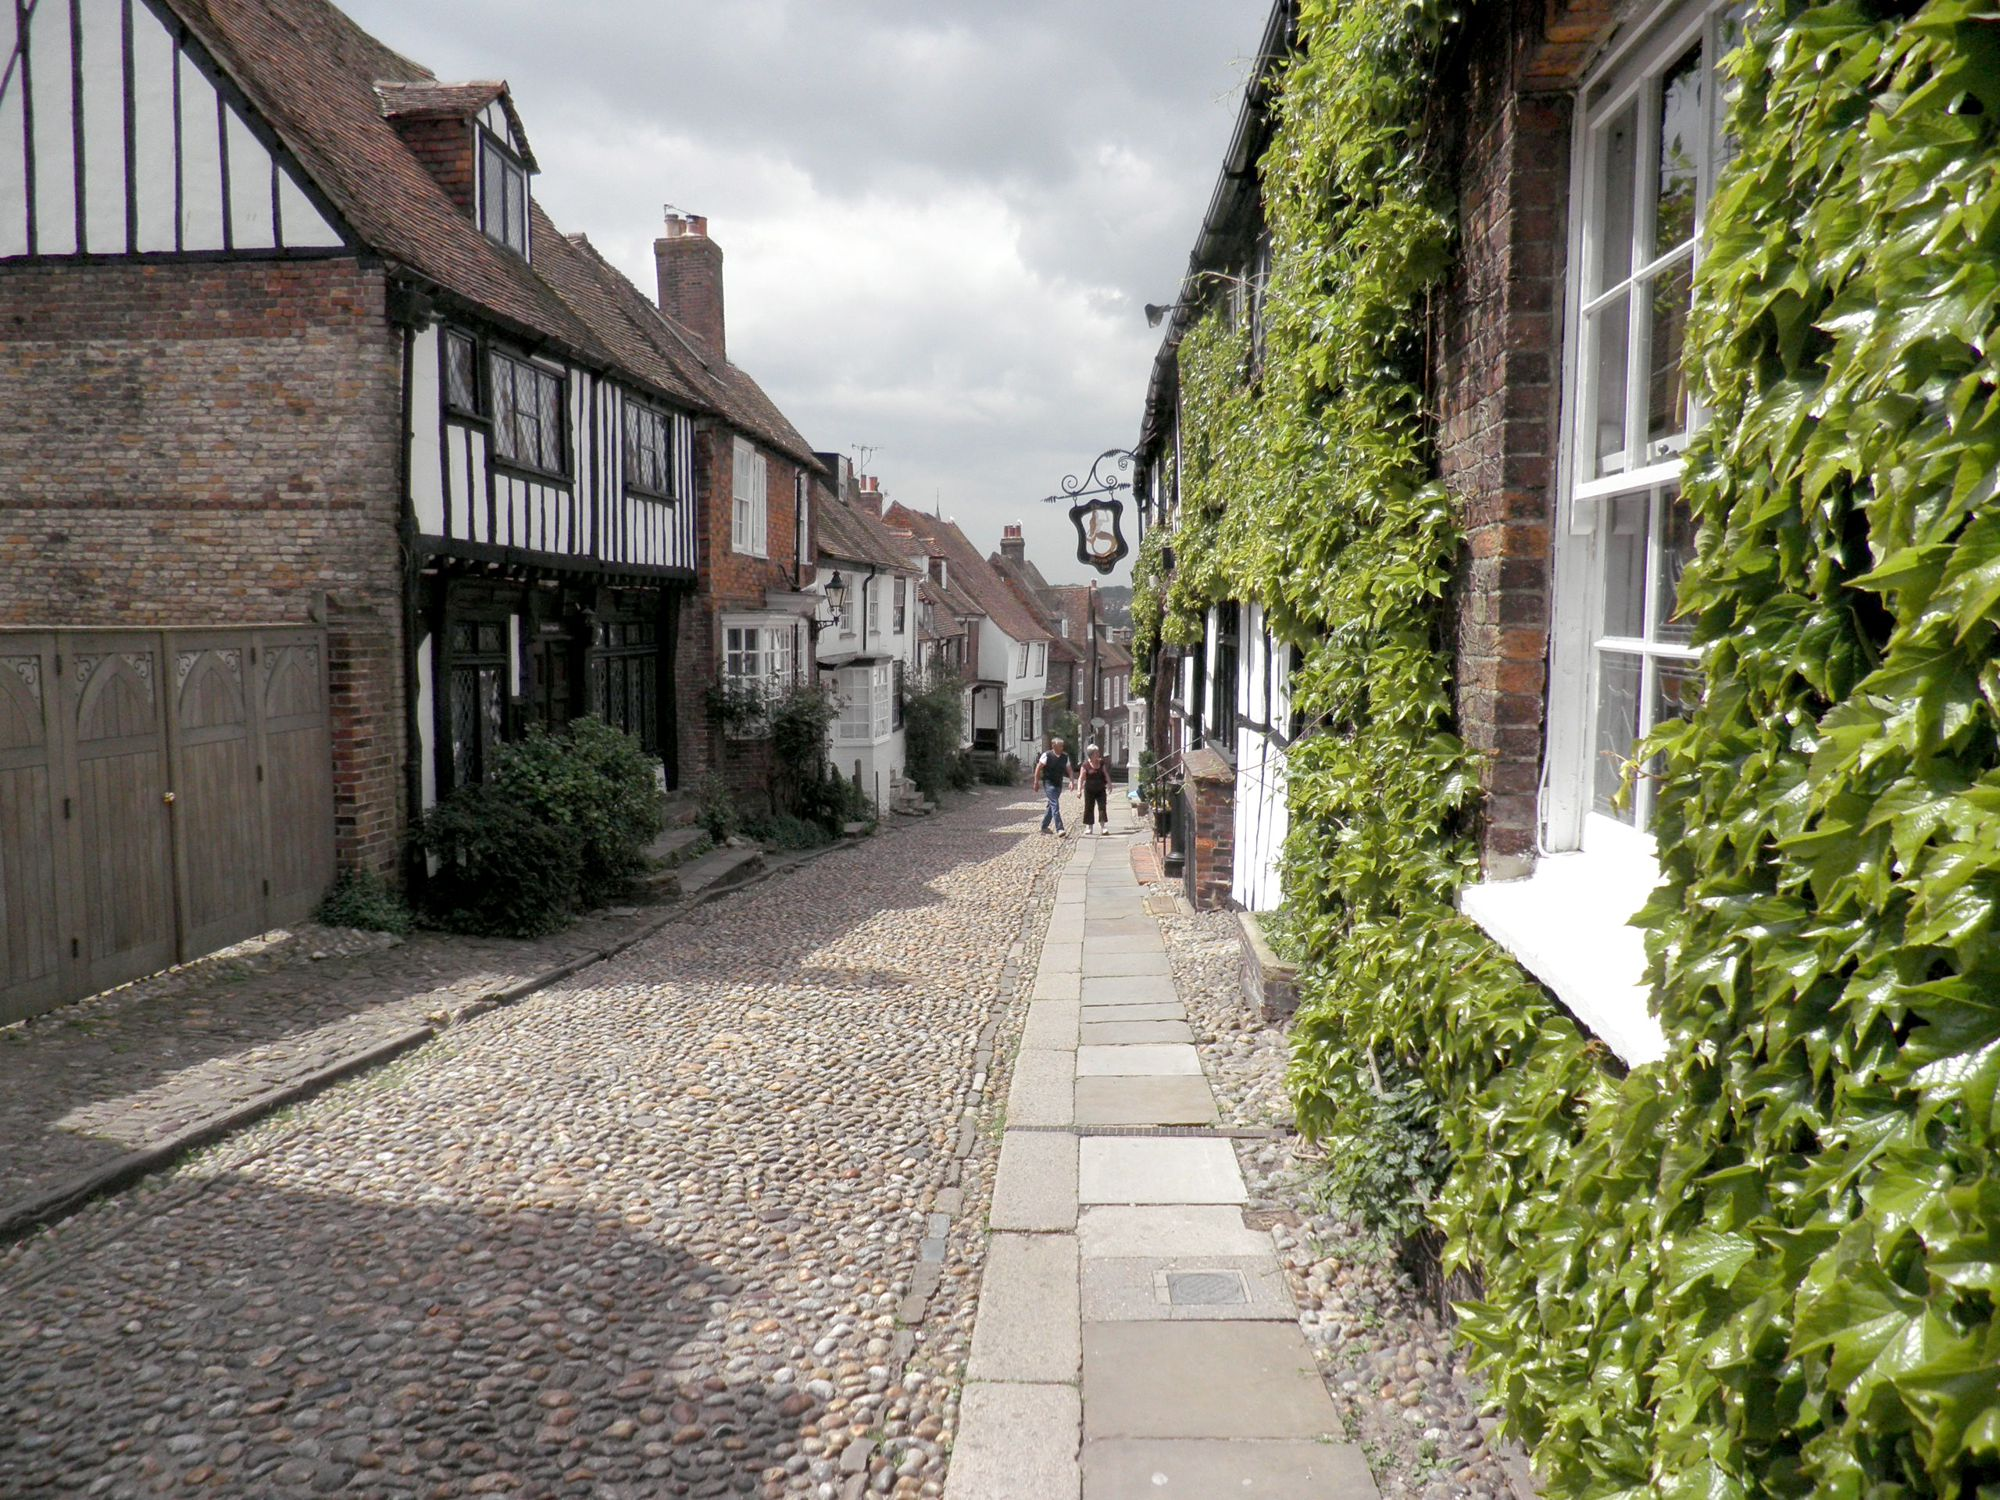 Hotels, B&Bs & Self-Catering in Rye - Cool Places to Stay in the UK